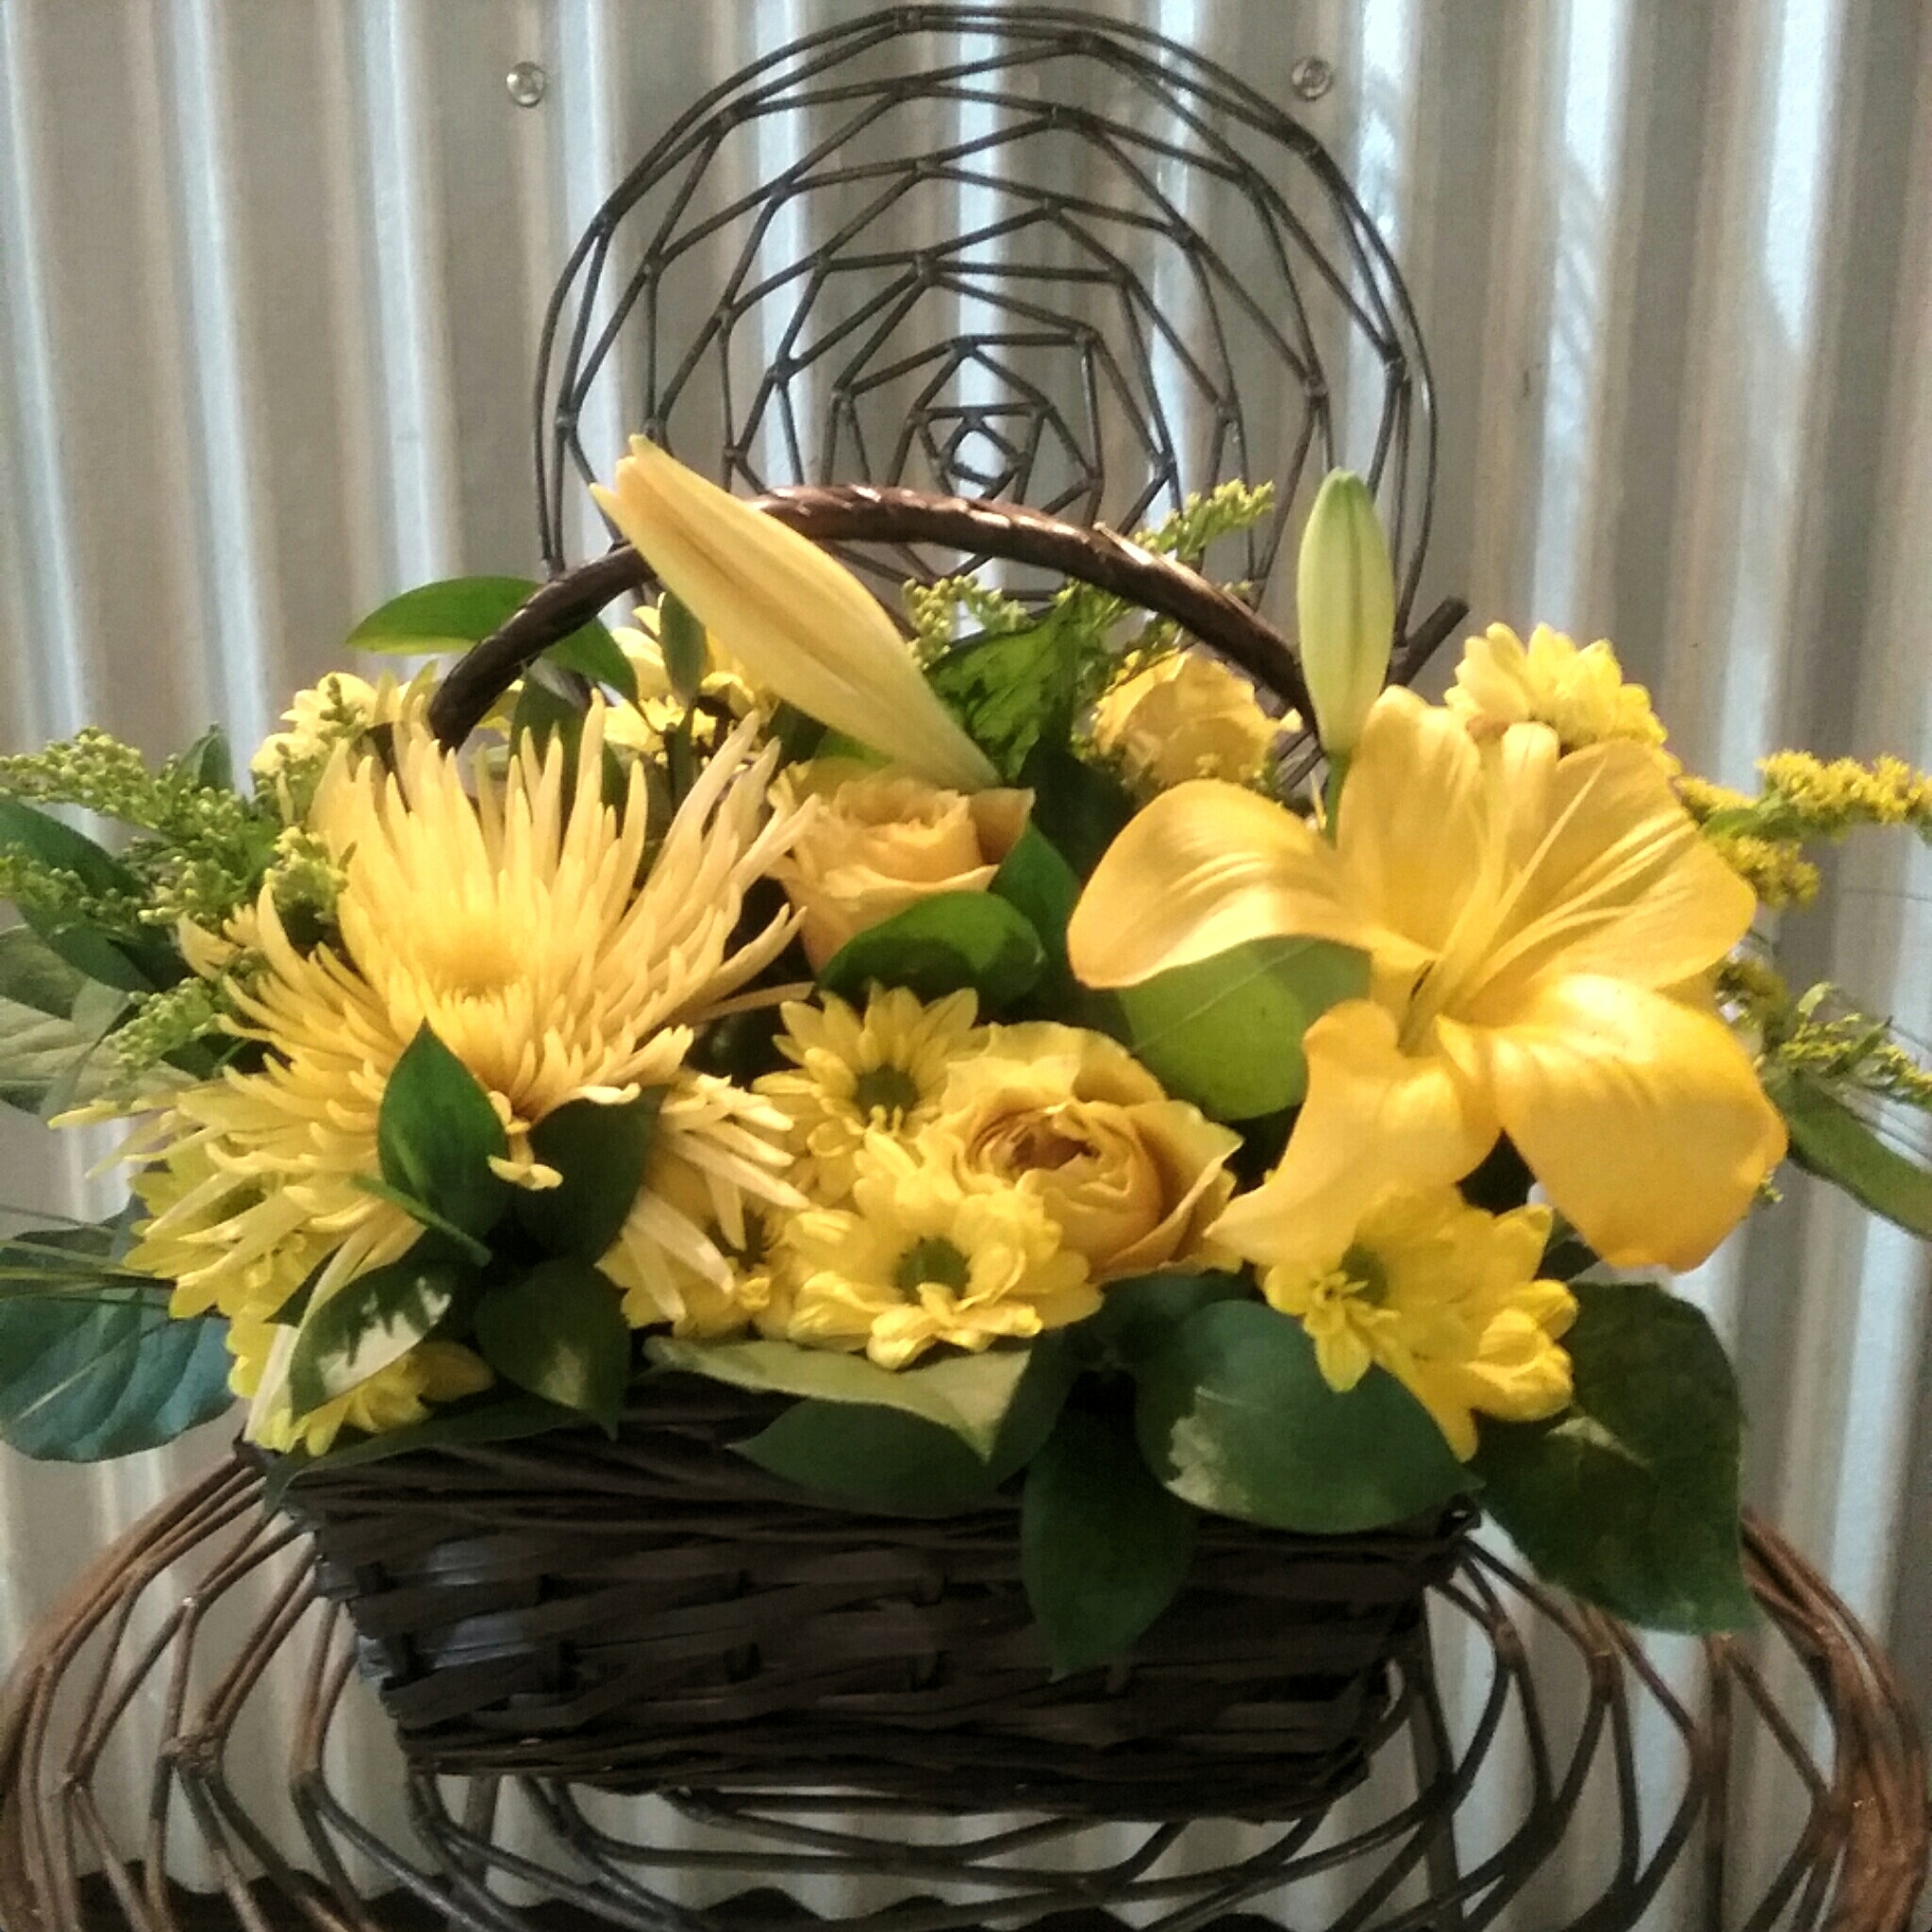 Yellow flowers in a wicker basket